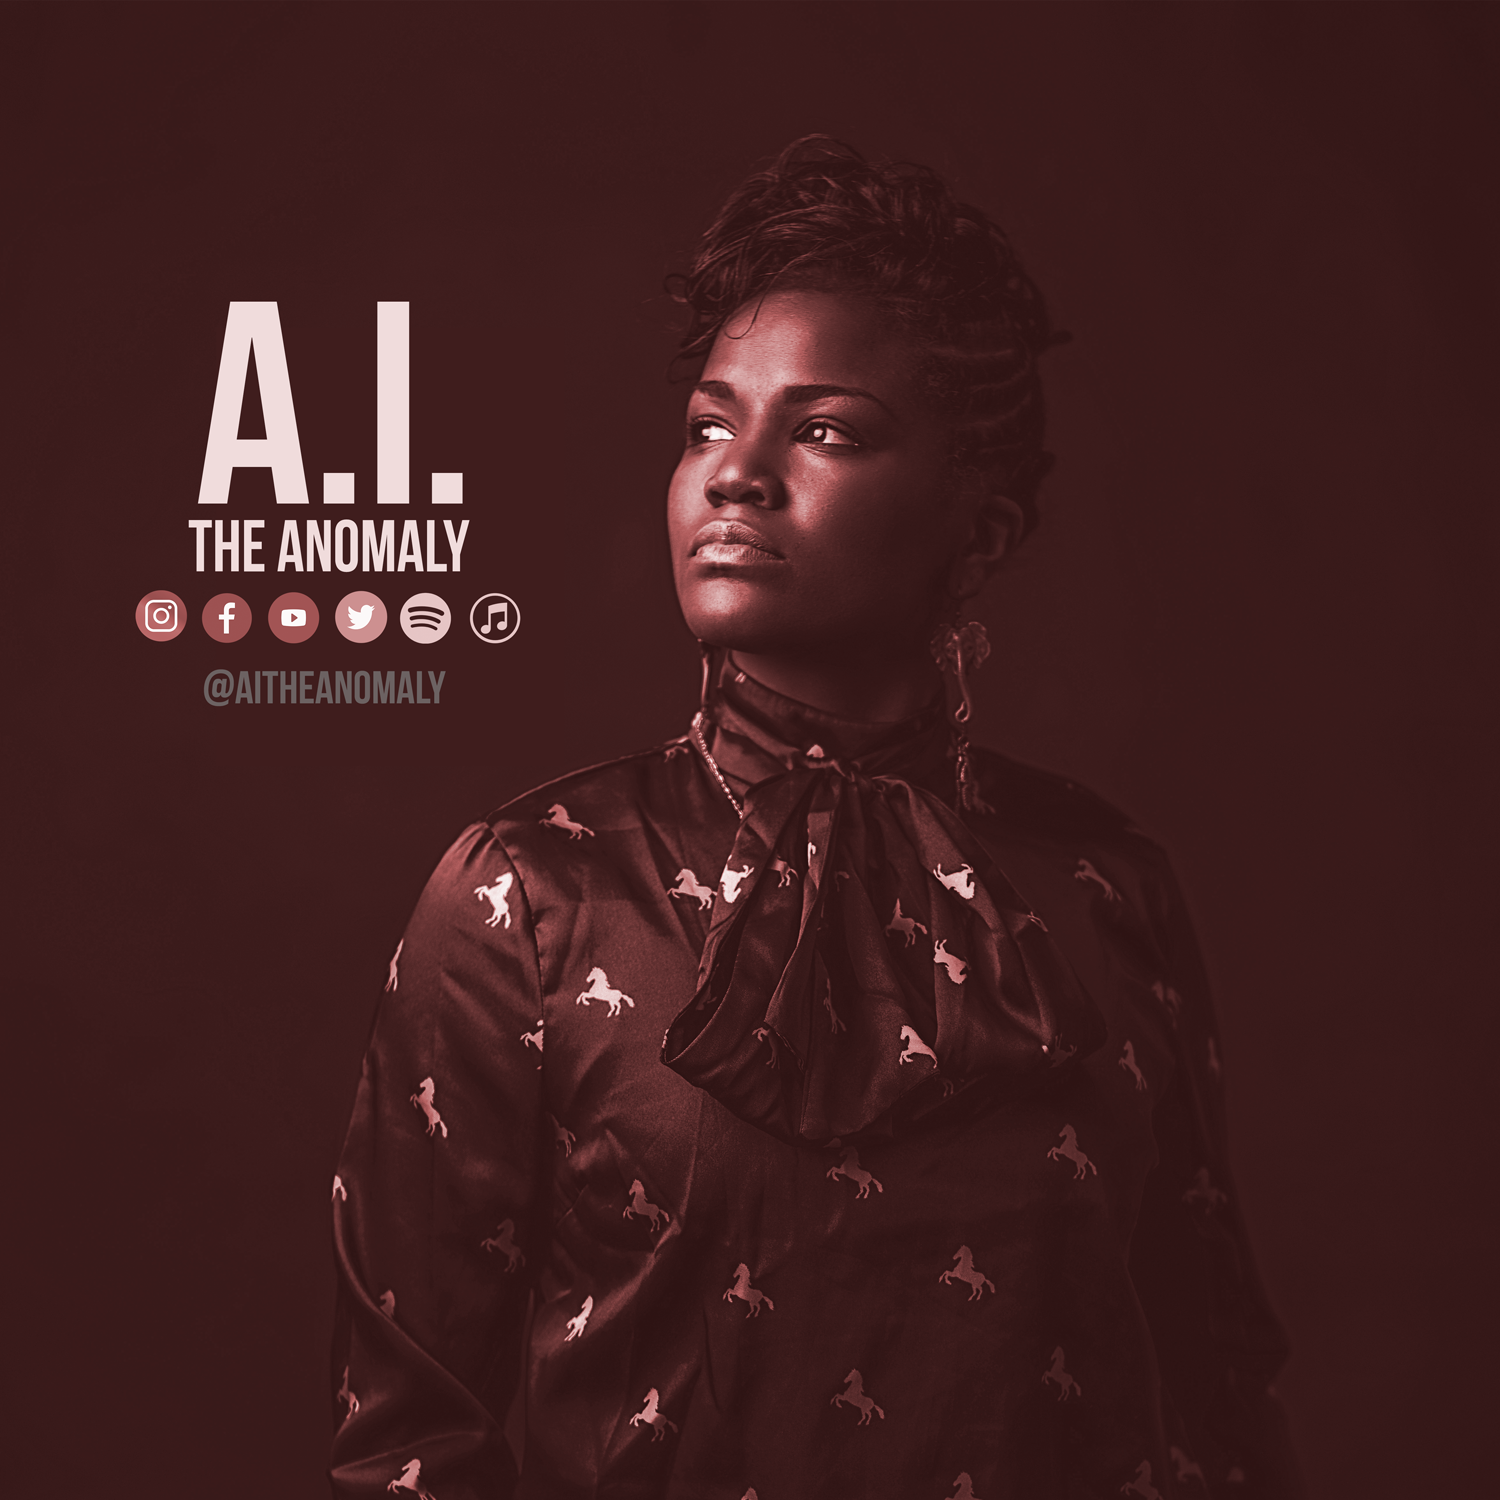 A.I. The Anomaly